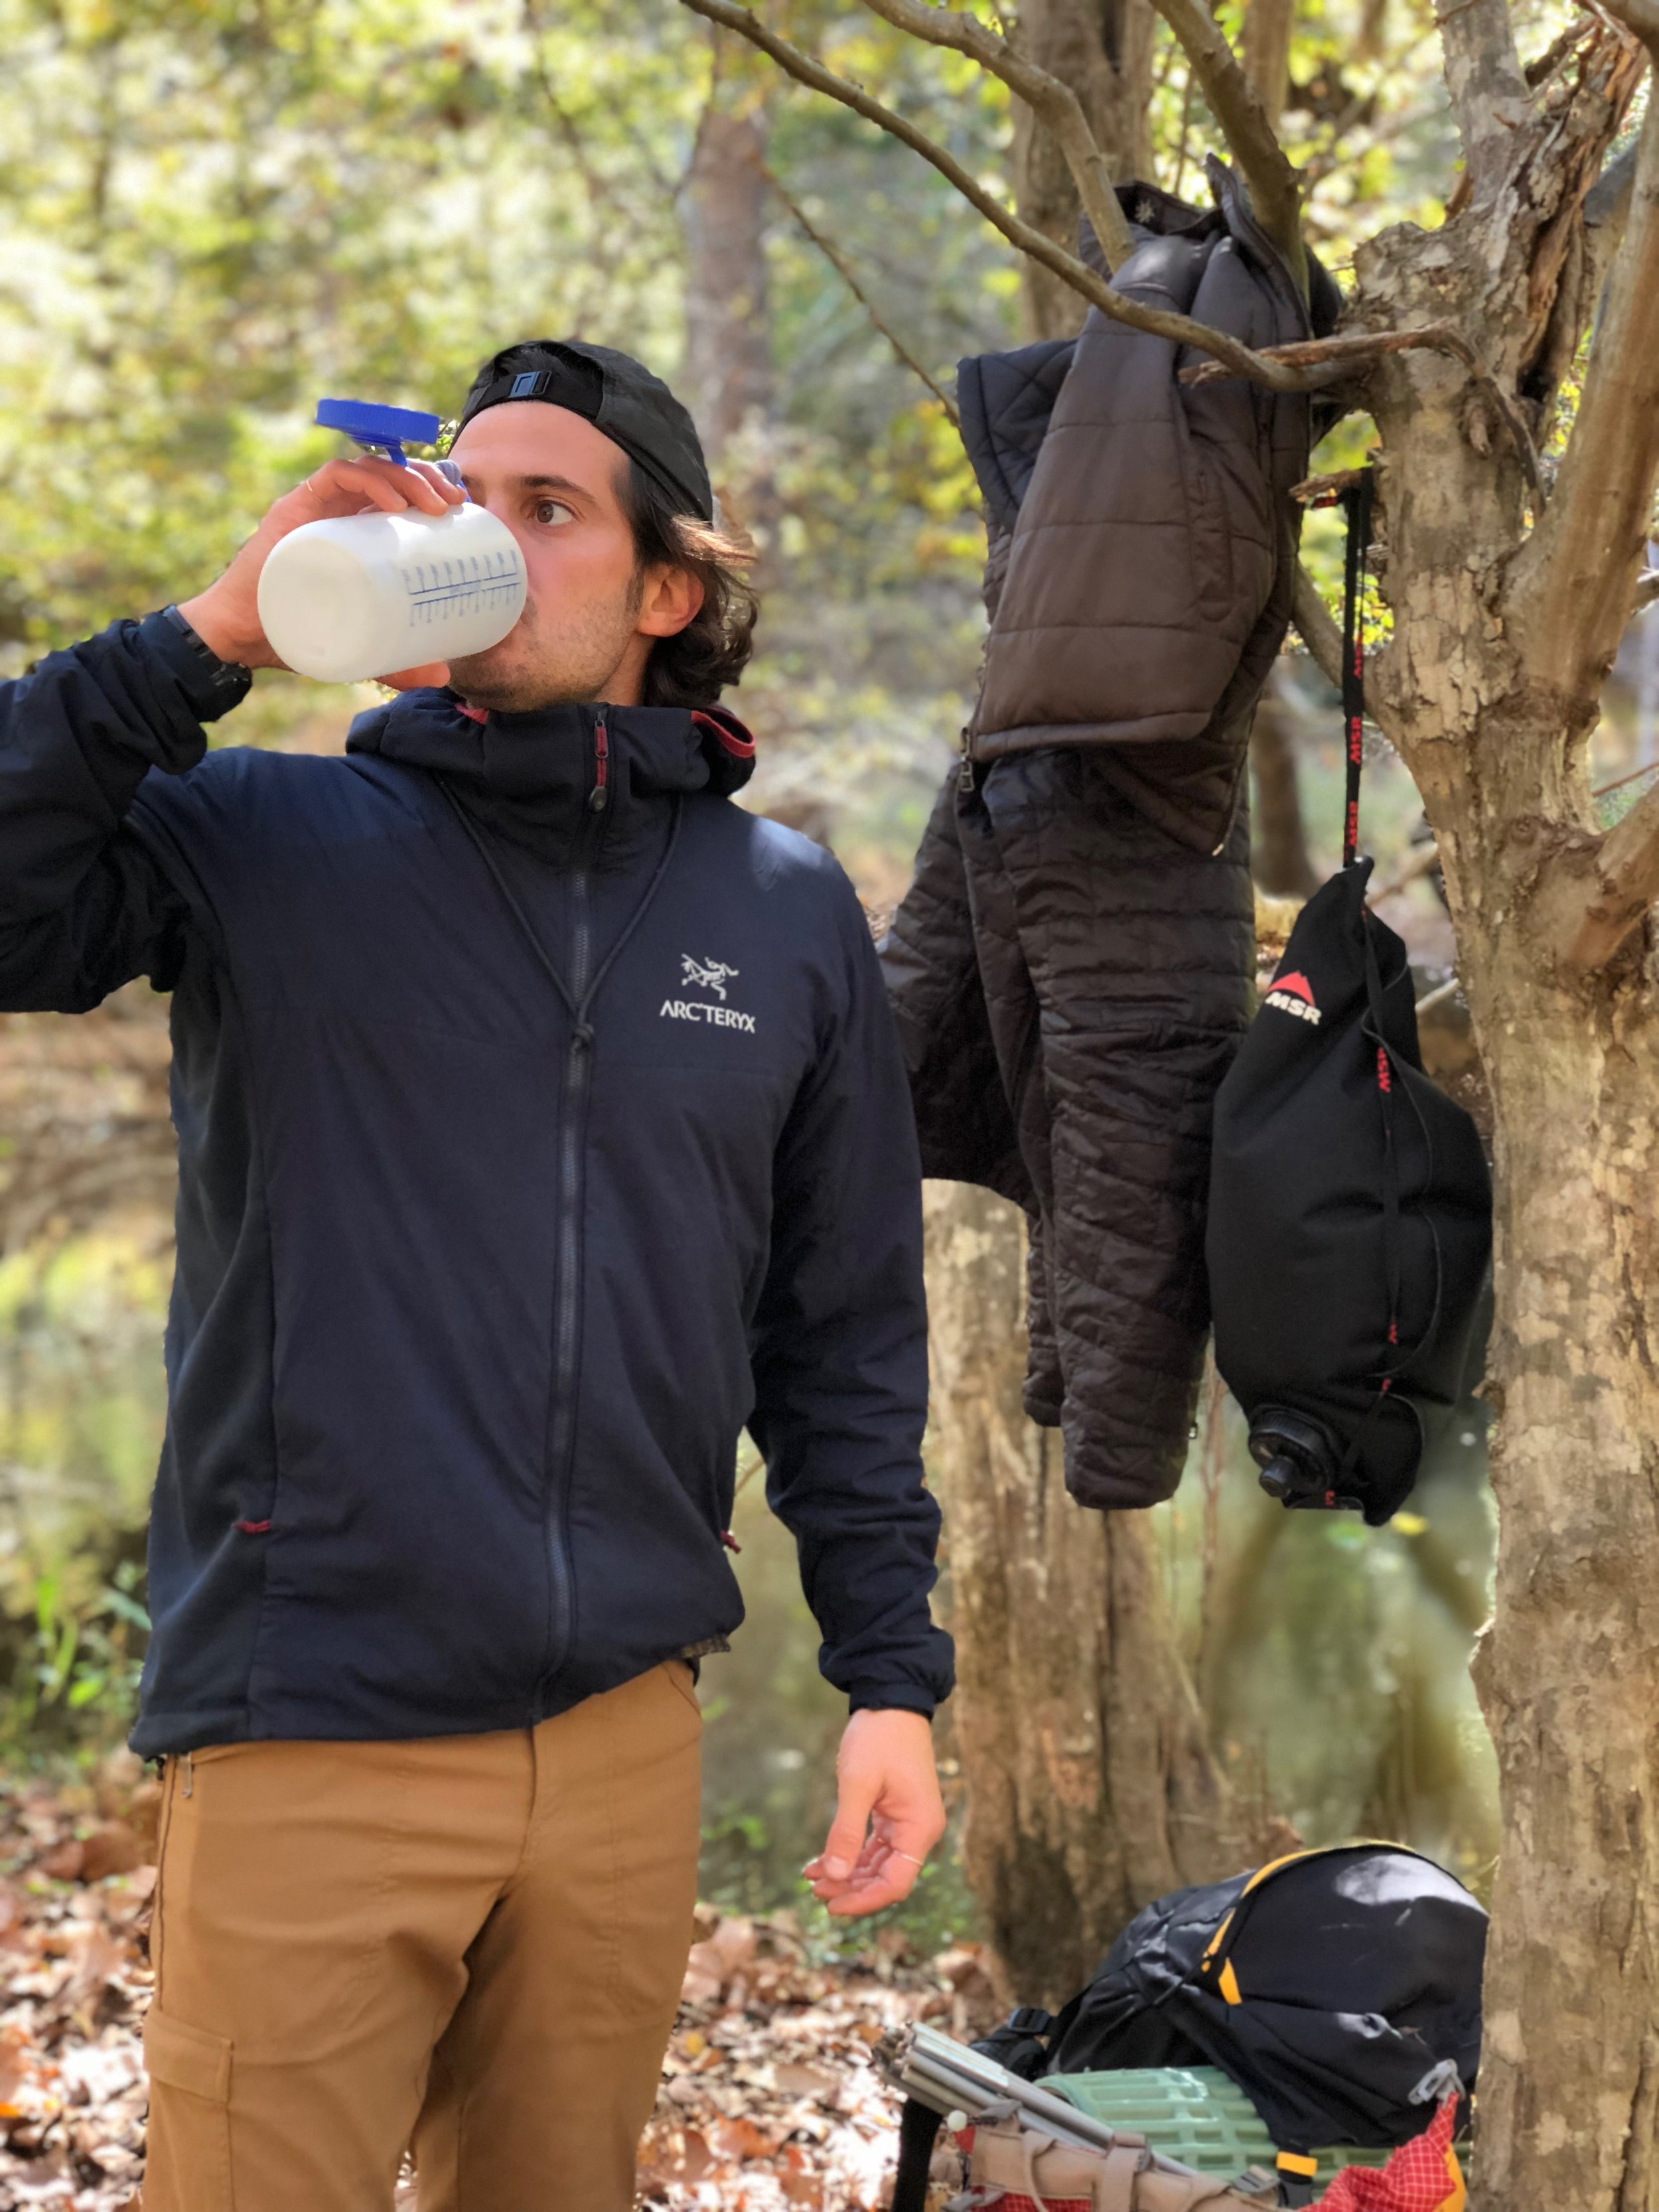 The Arc'teryx Atom LT jacket is a favorite among staff and customers.